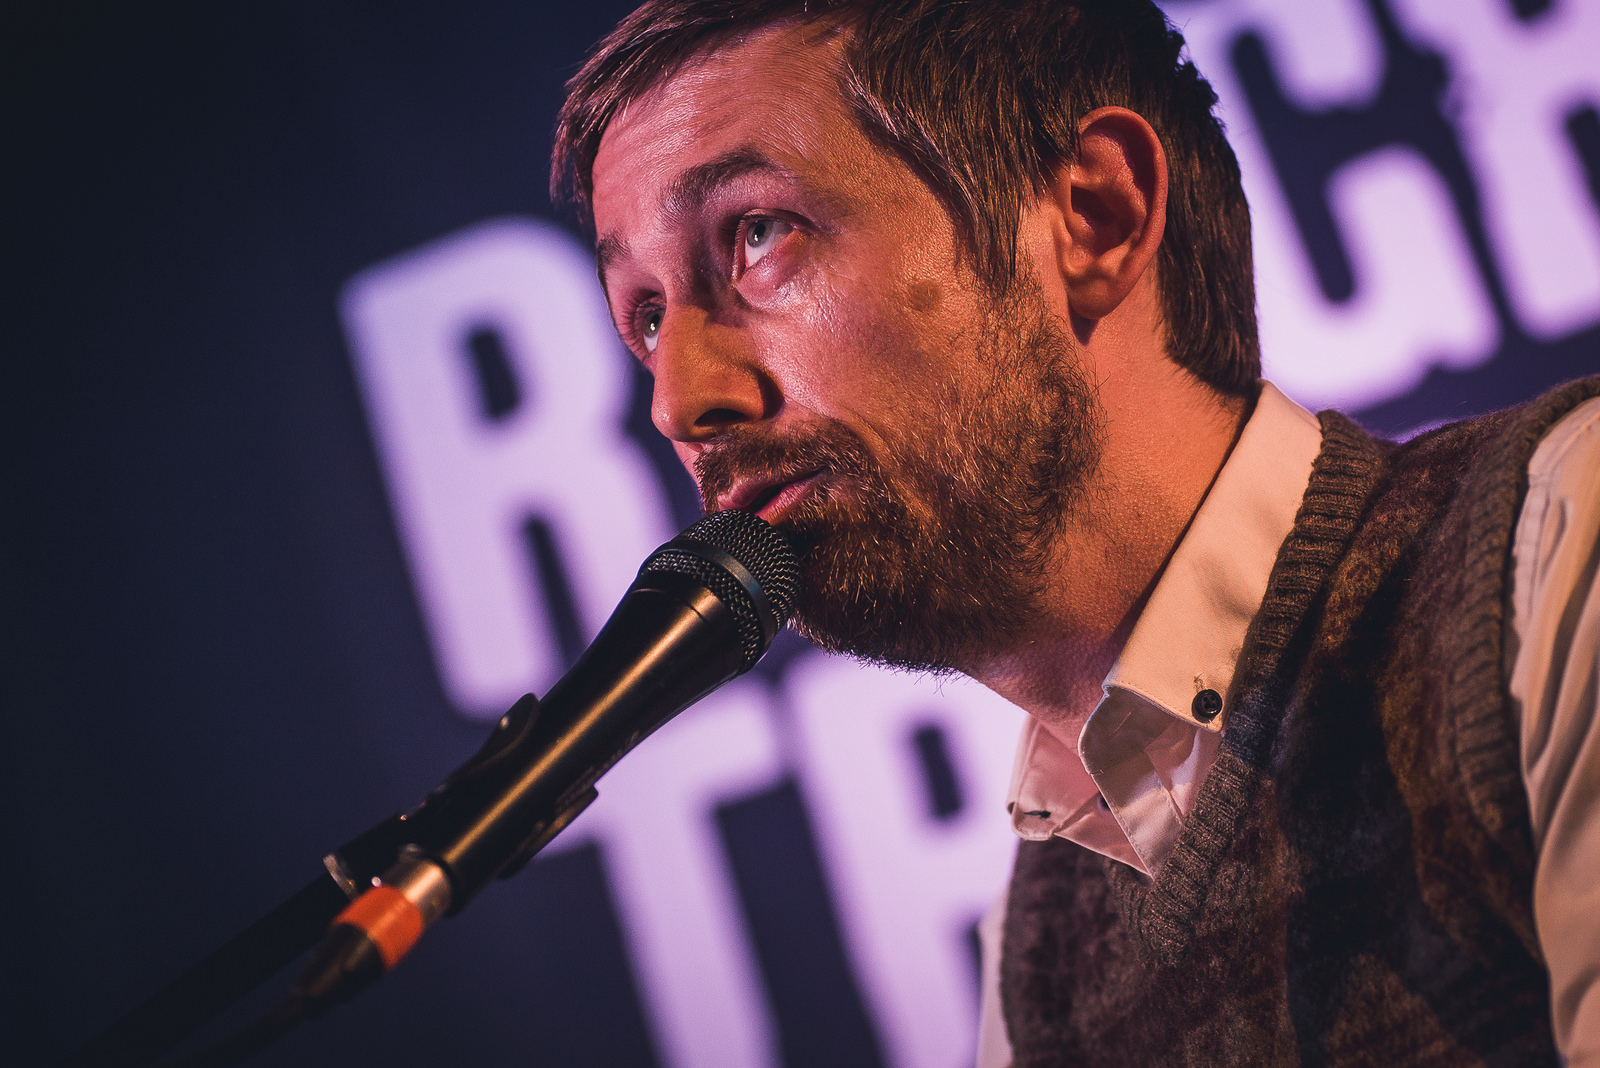 The Divine Comedy at Rough Trade